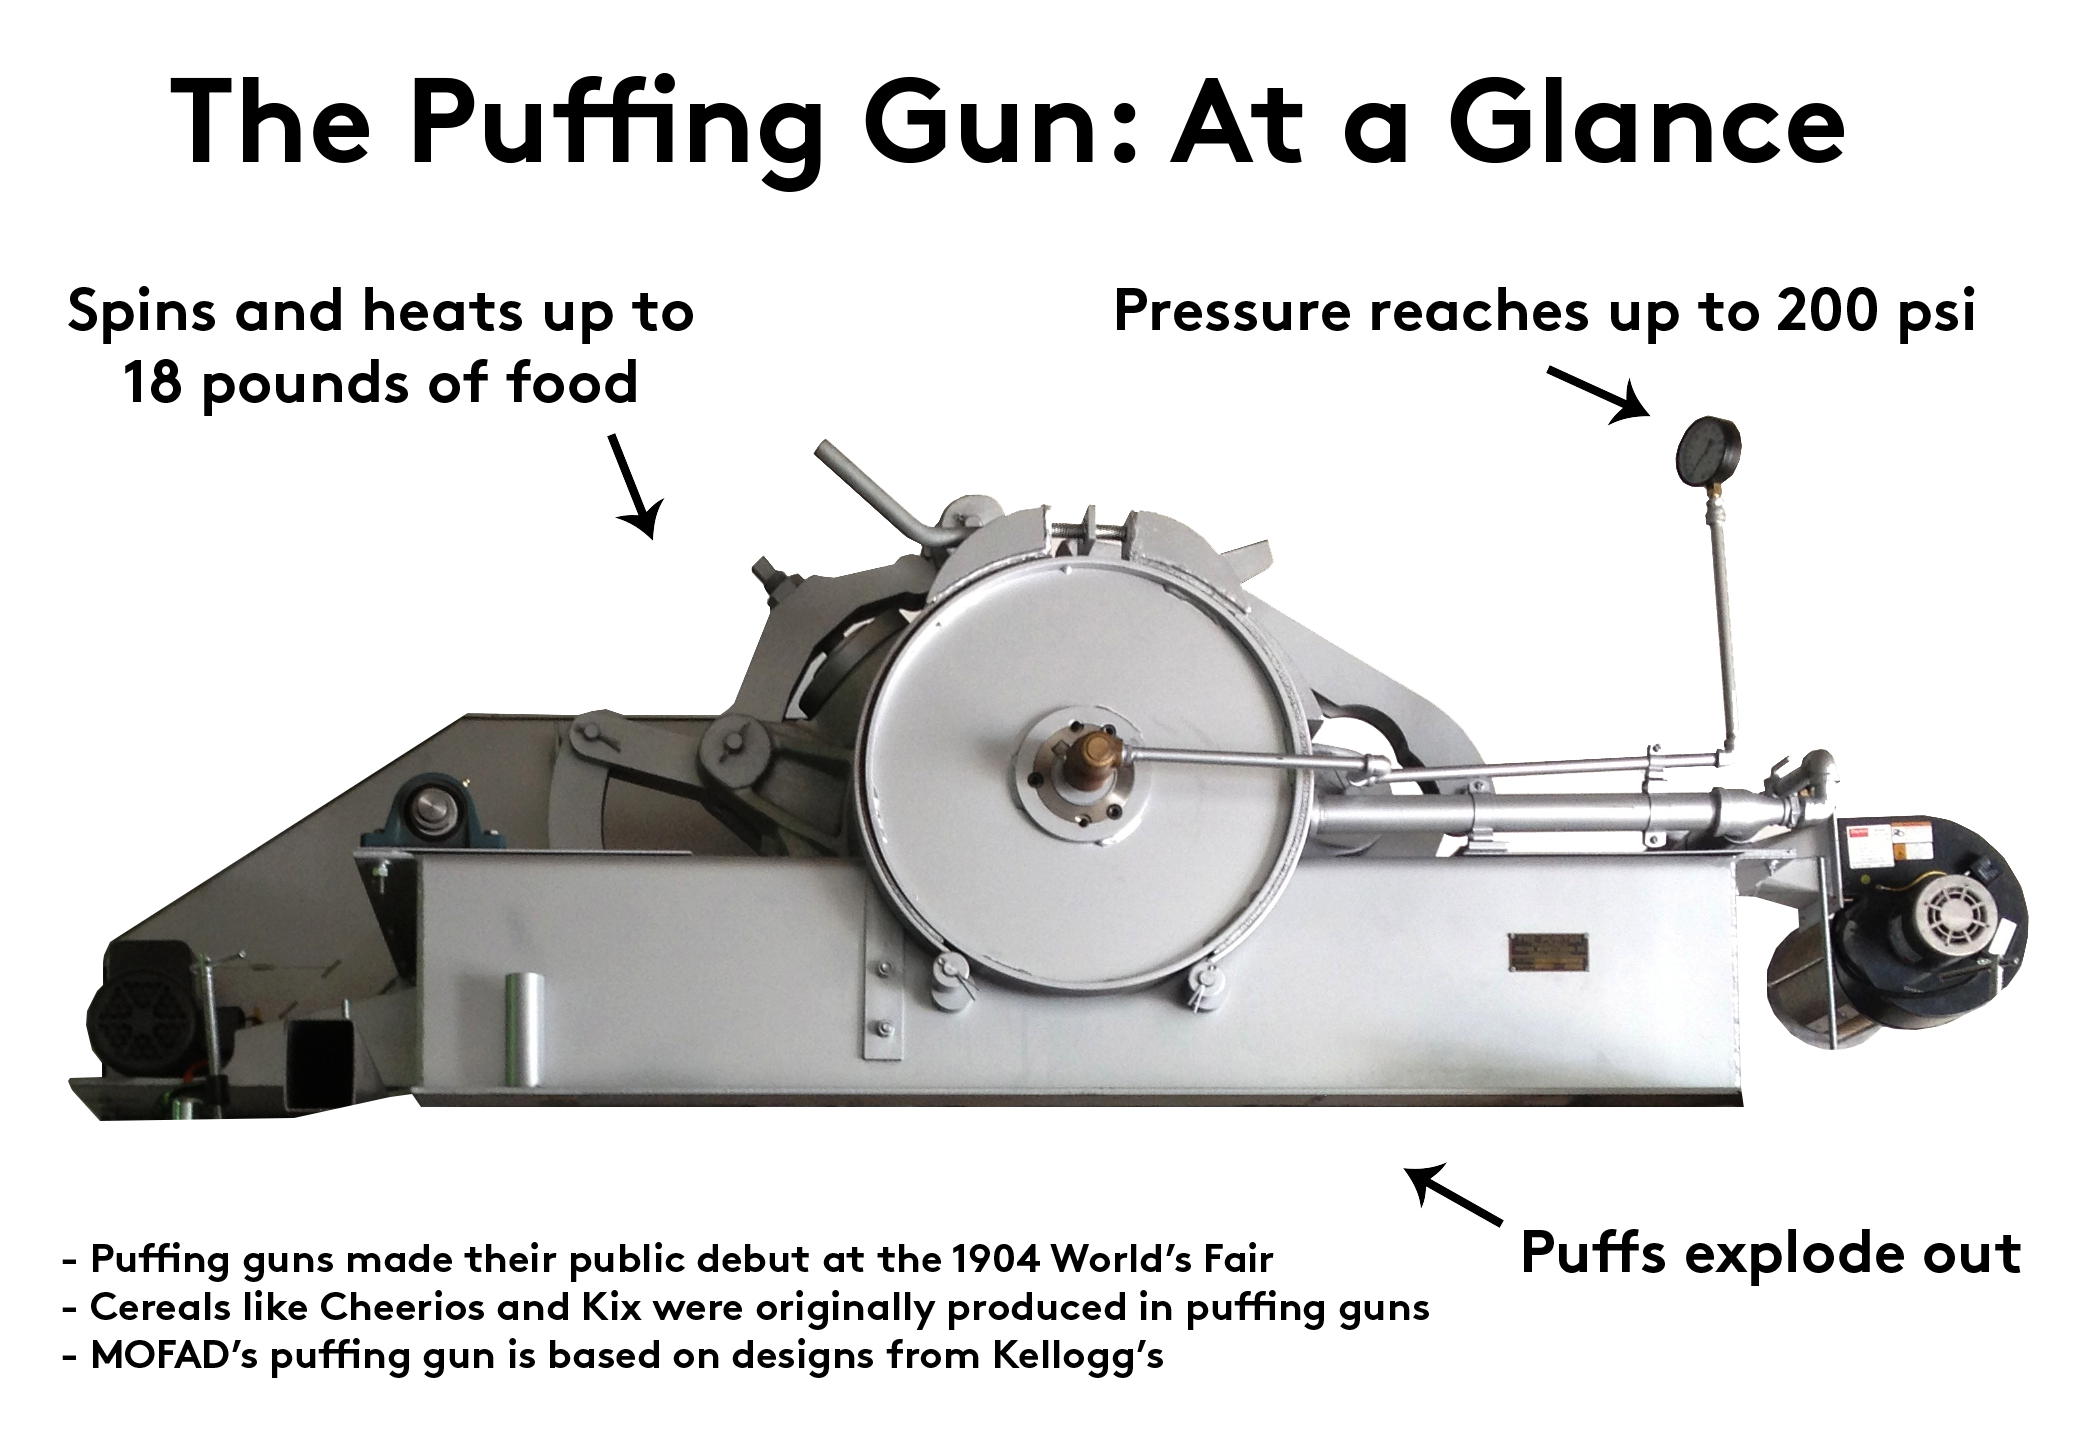 The Puffing Gun. Courtesy of MOFAD